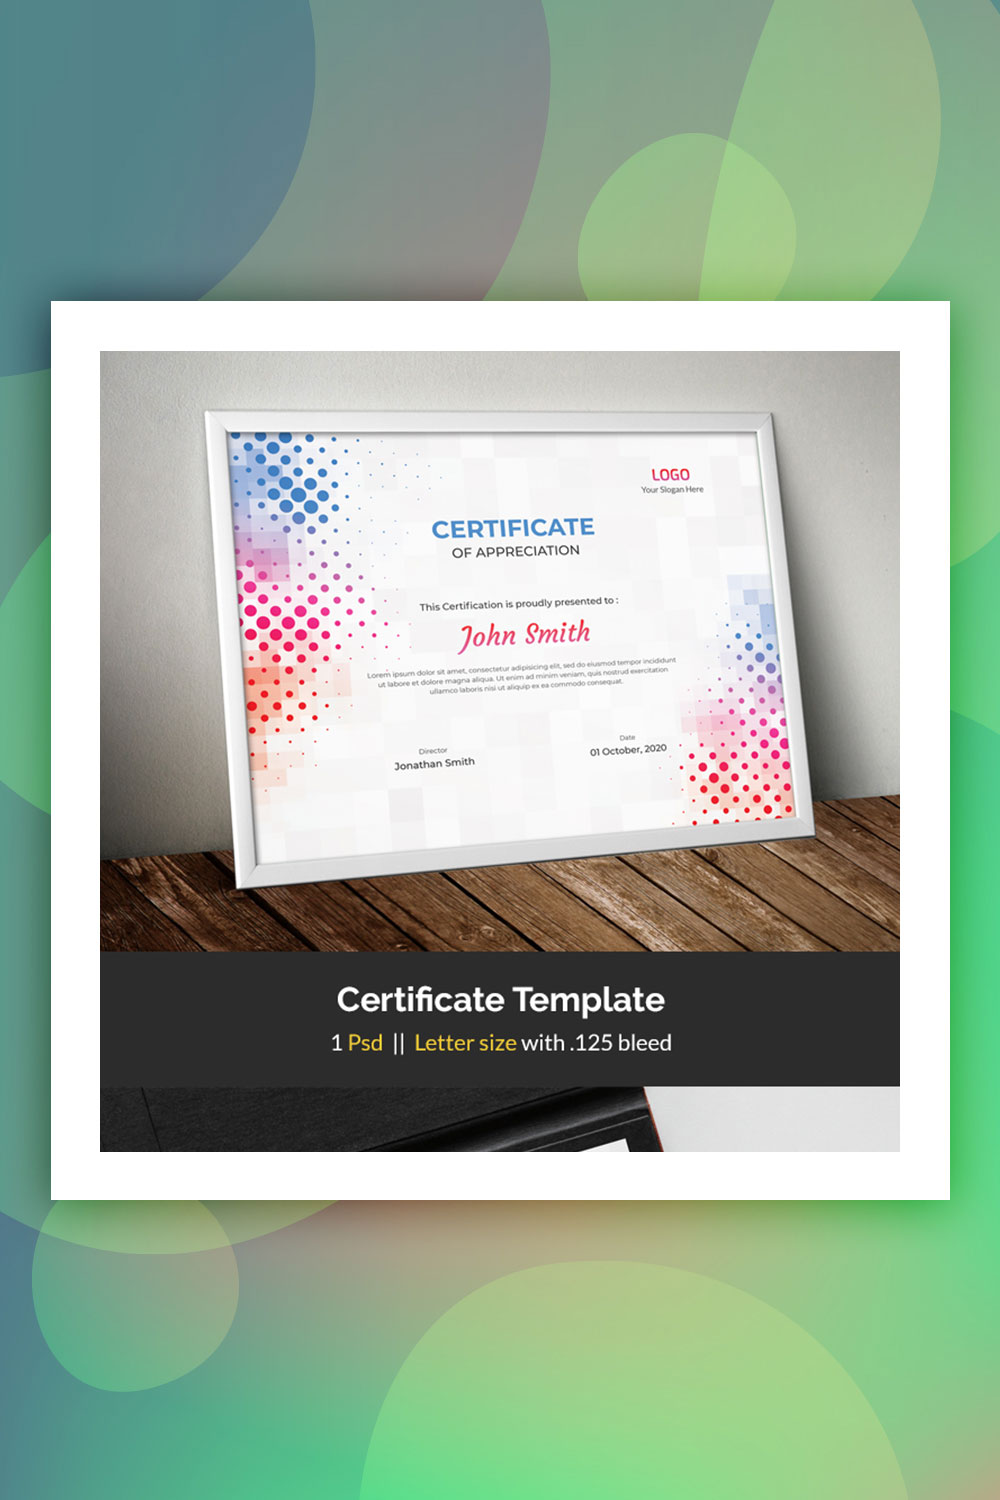 19 Attention-Grabbing Certificate Templates - Colorlib